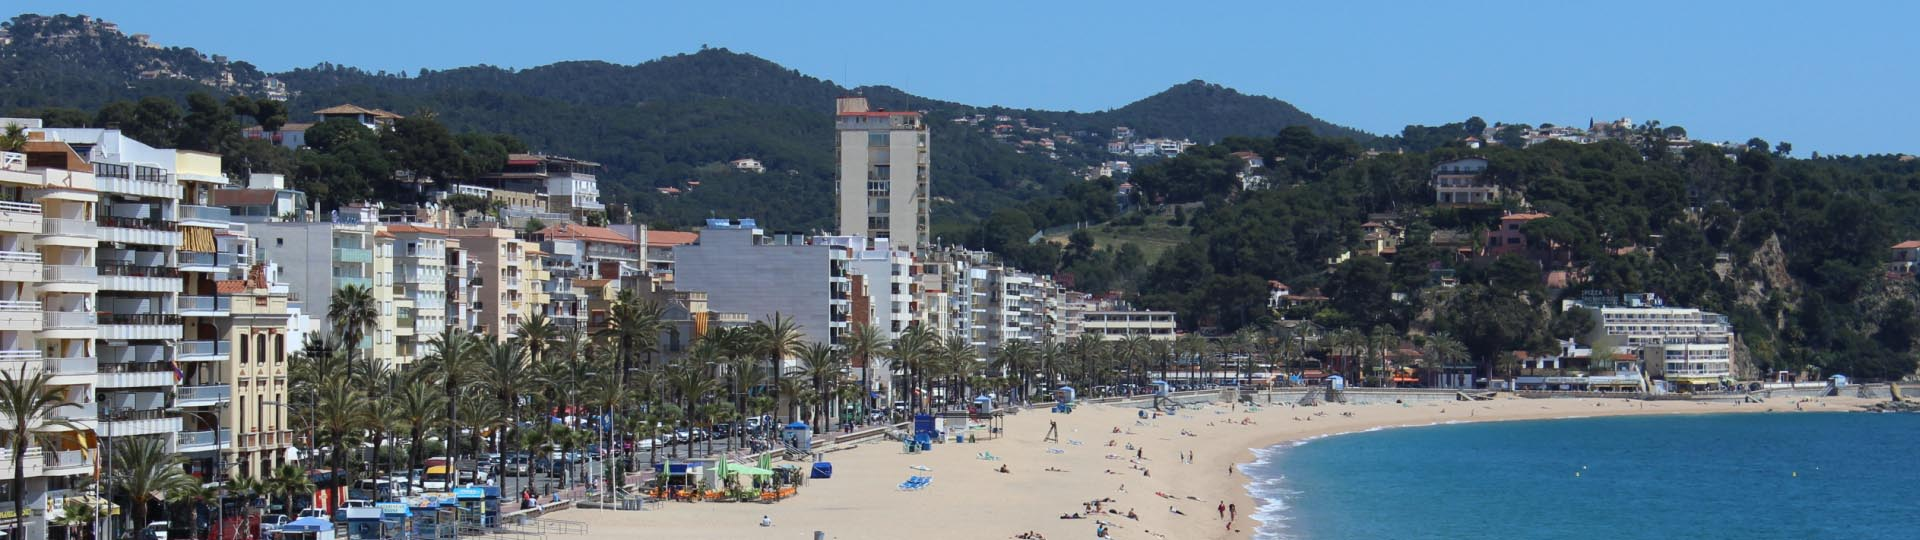 beautiful_flower_on_beach_lloret_de_mar2.jpg